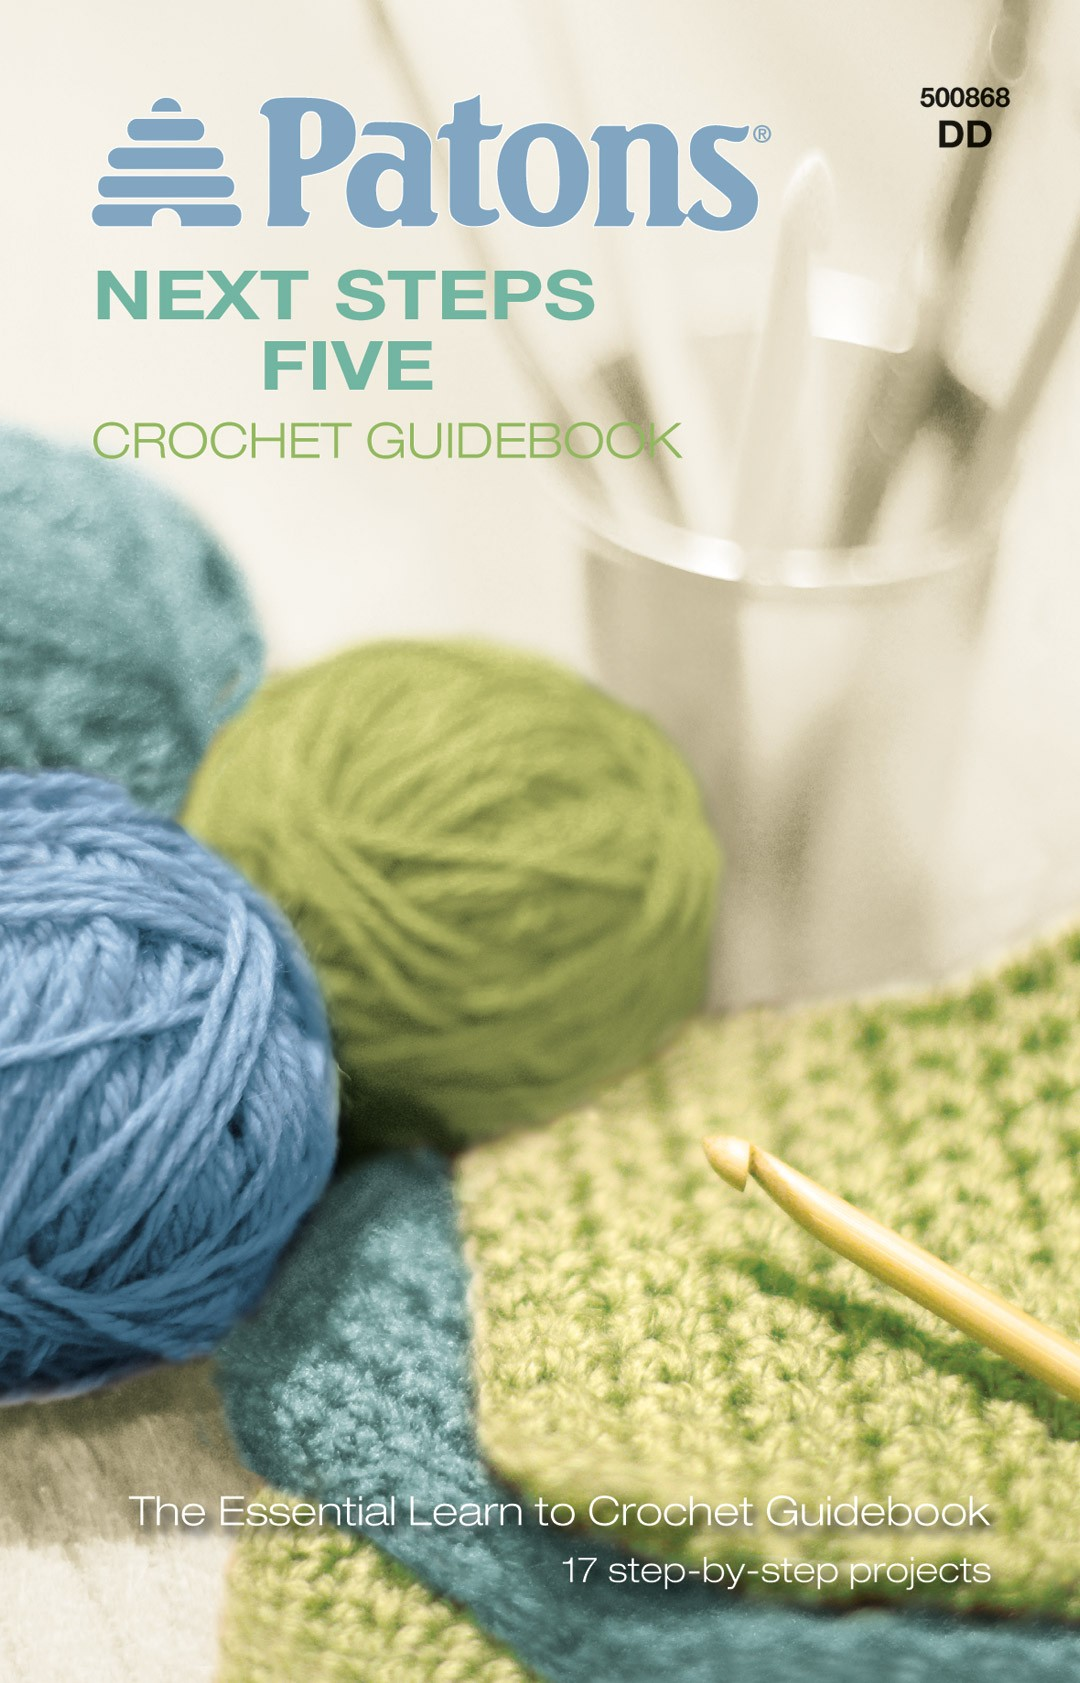 Next Steps Five - Crochet Guidebook